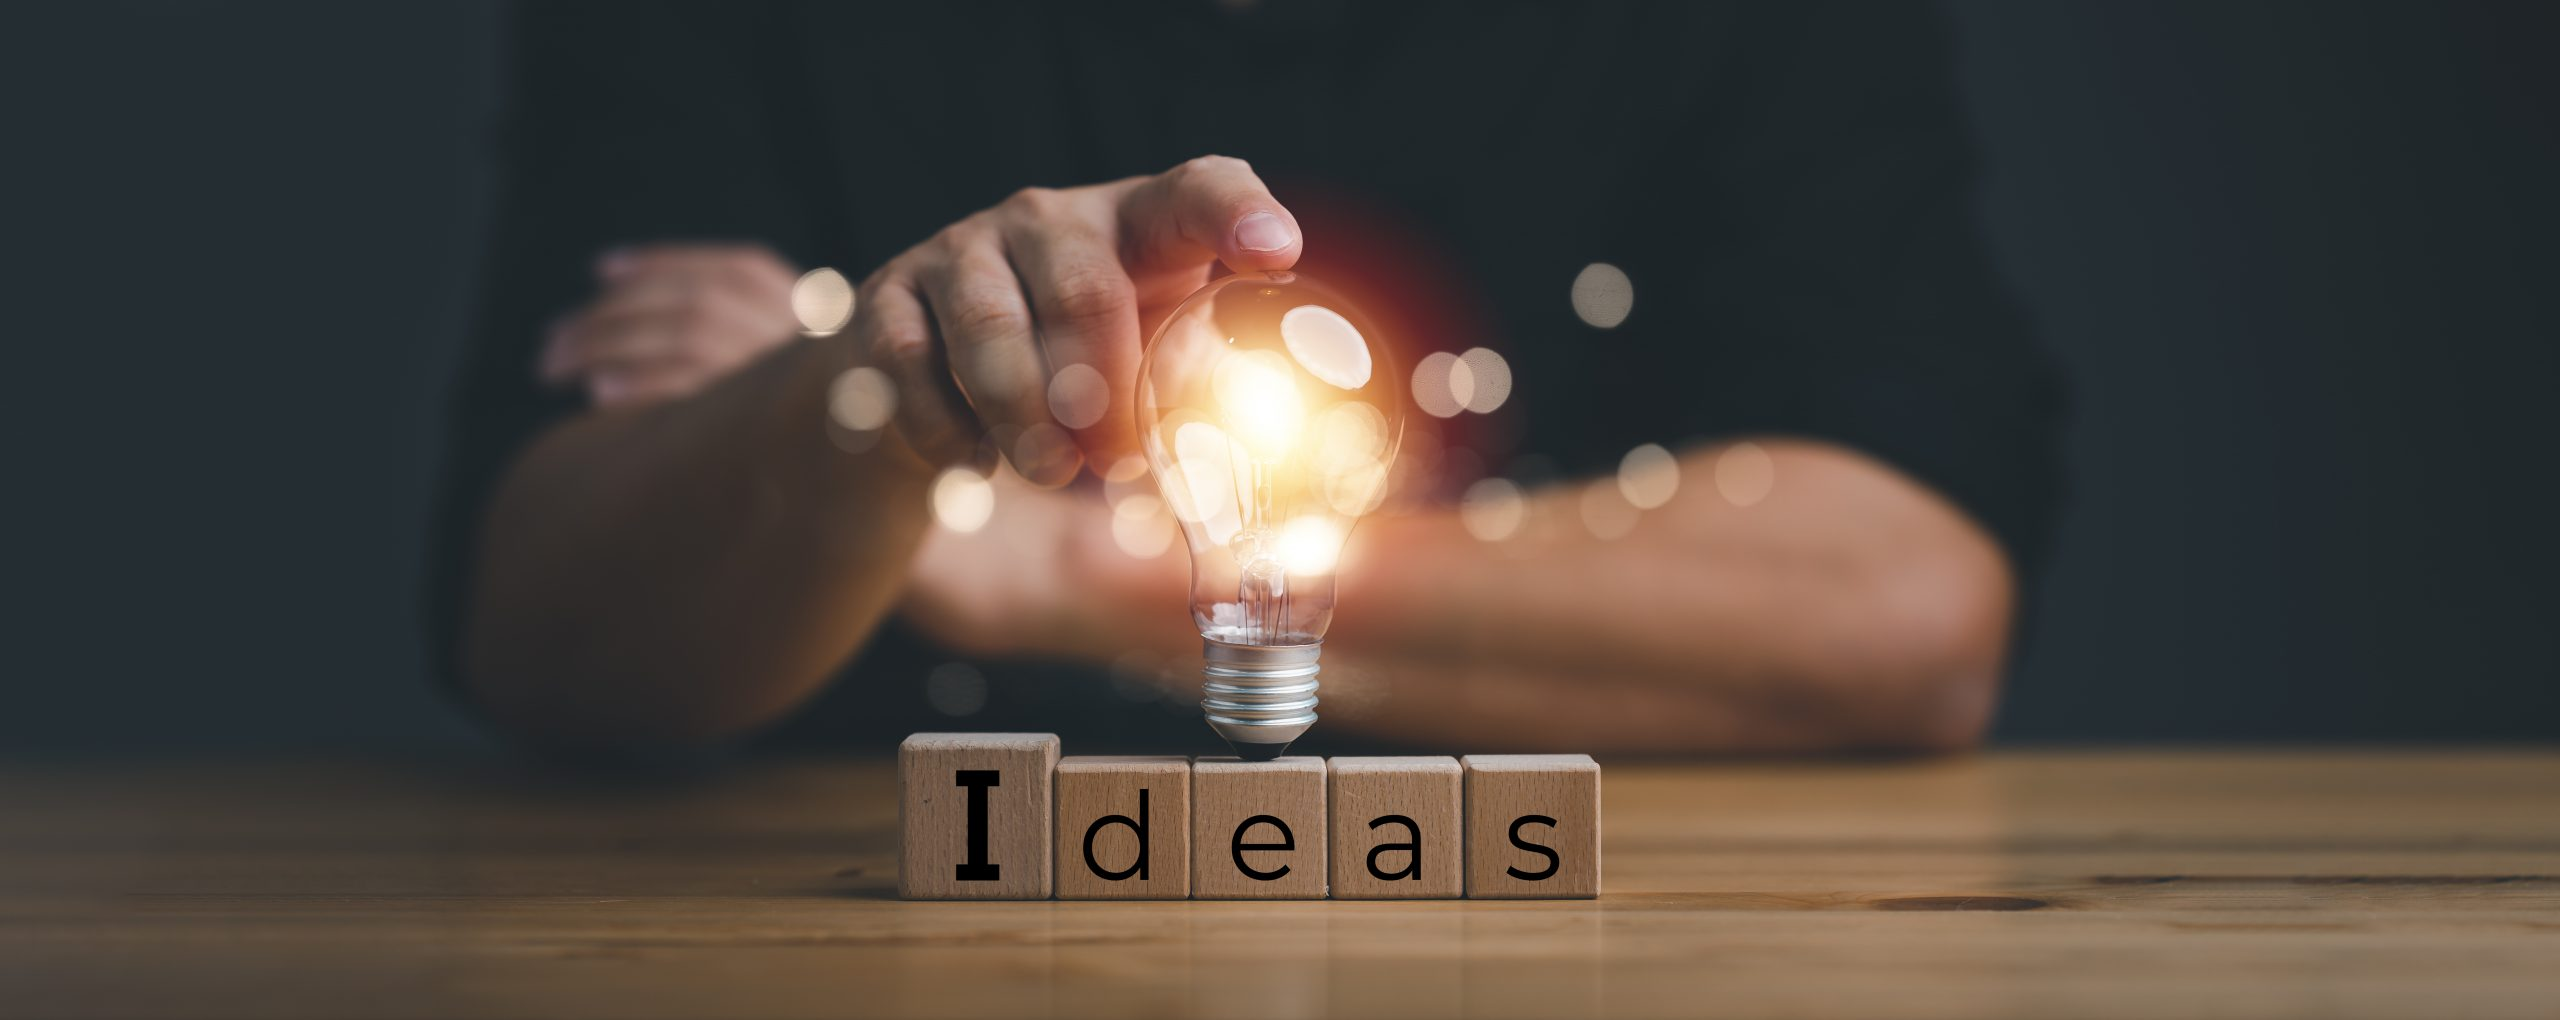 hand touching on light bulb on wood block with Word Ideas, new idea concept with innovation and inspiration, innovative technology in science and communication concept.